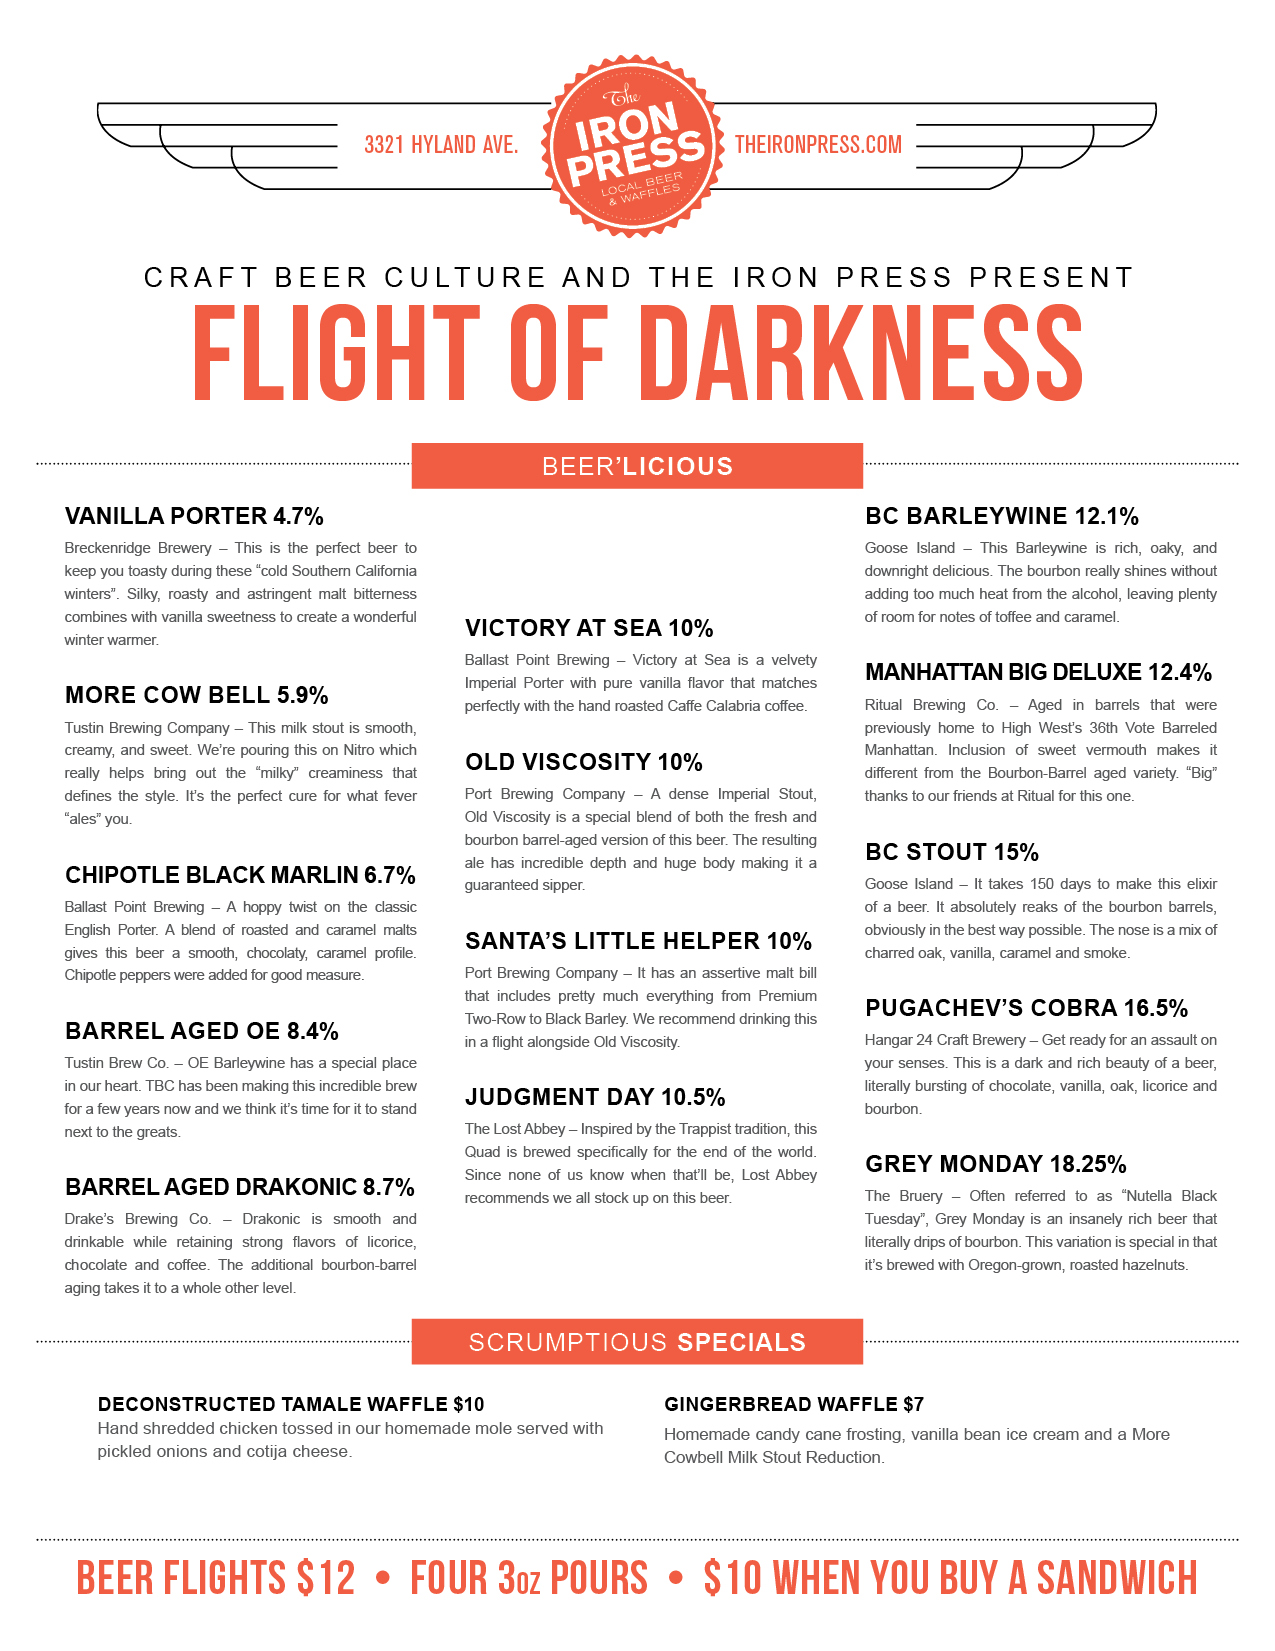 Flight of Darkness 2.0